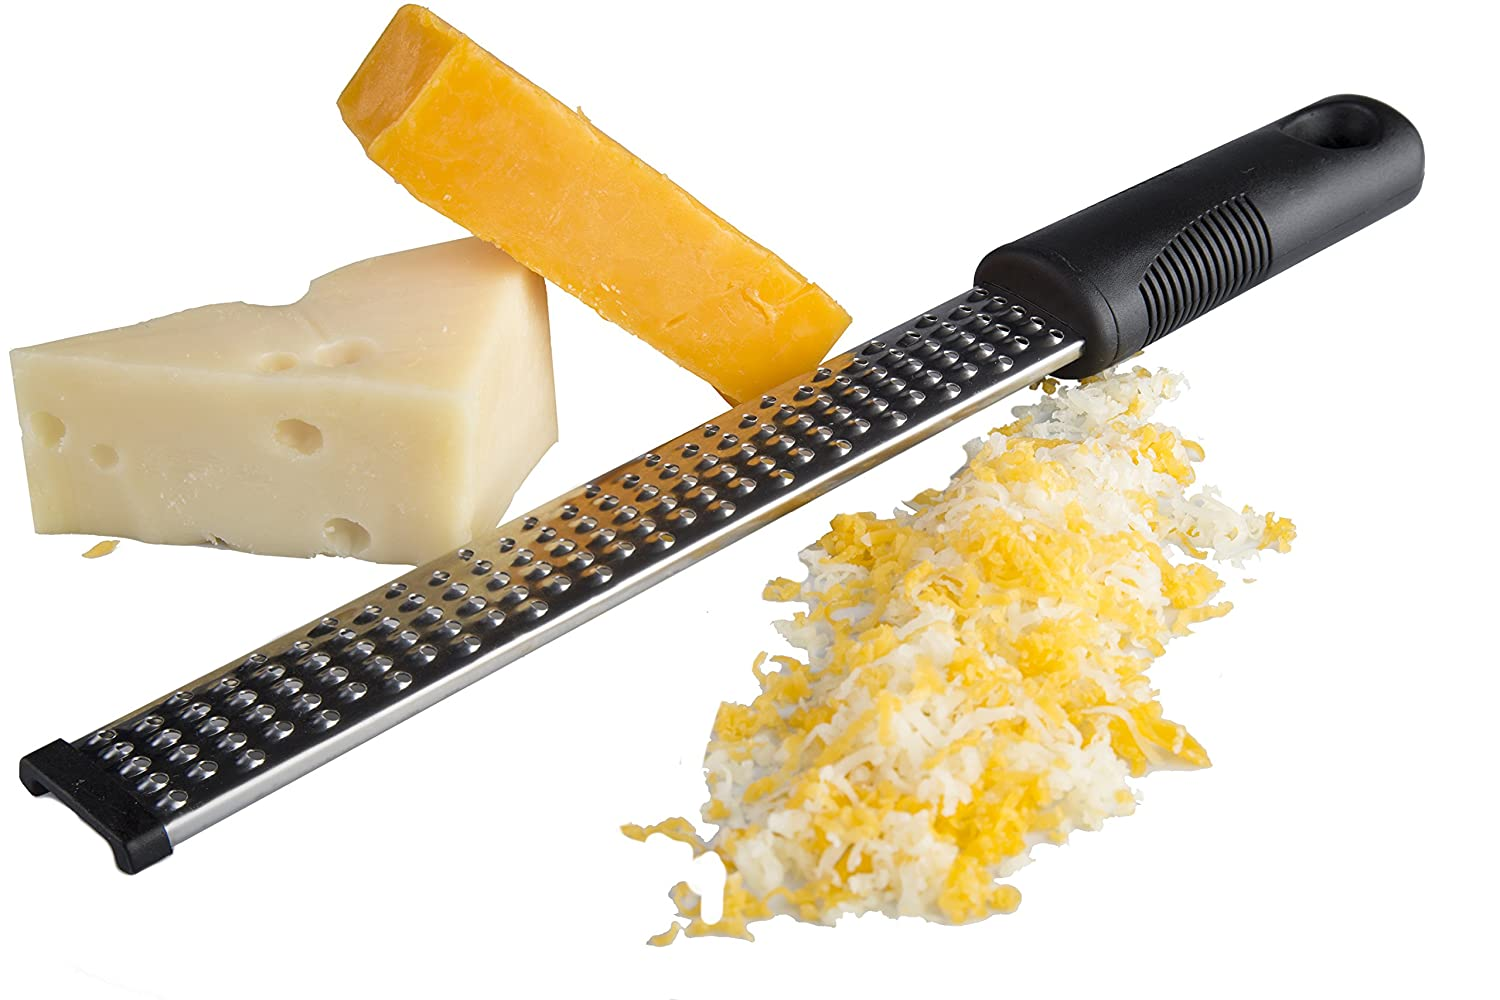 Premium Cheese Grater / Lemon Zester Razor Sharp. By Kitchen Winners S10001